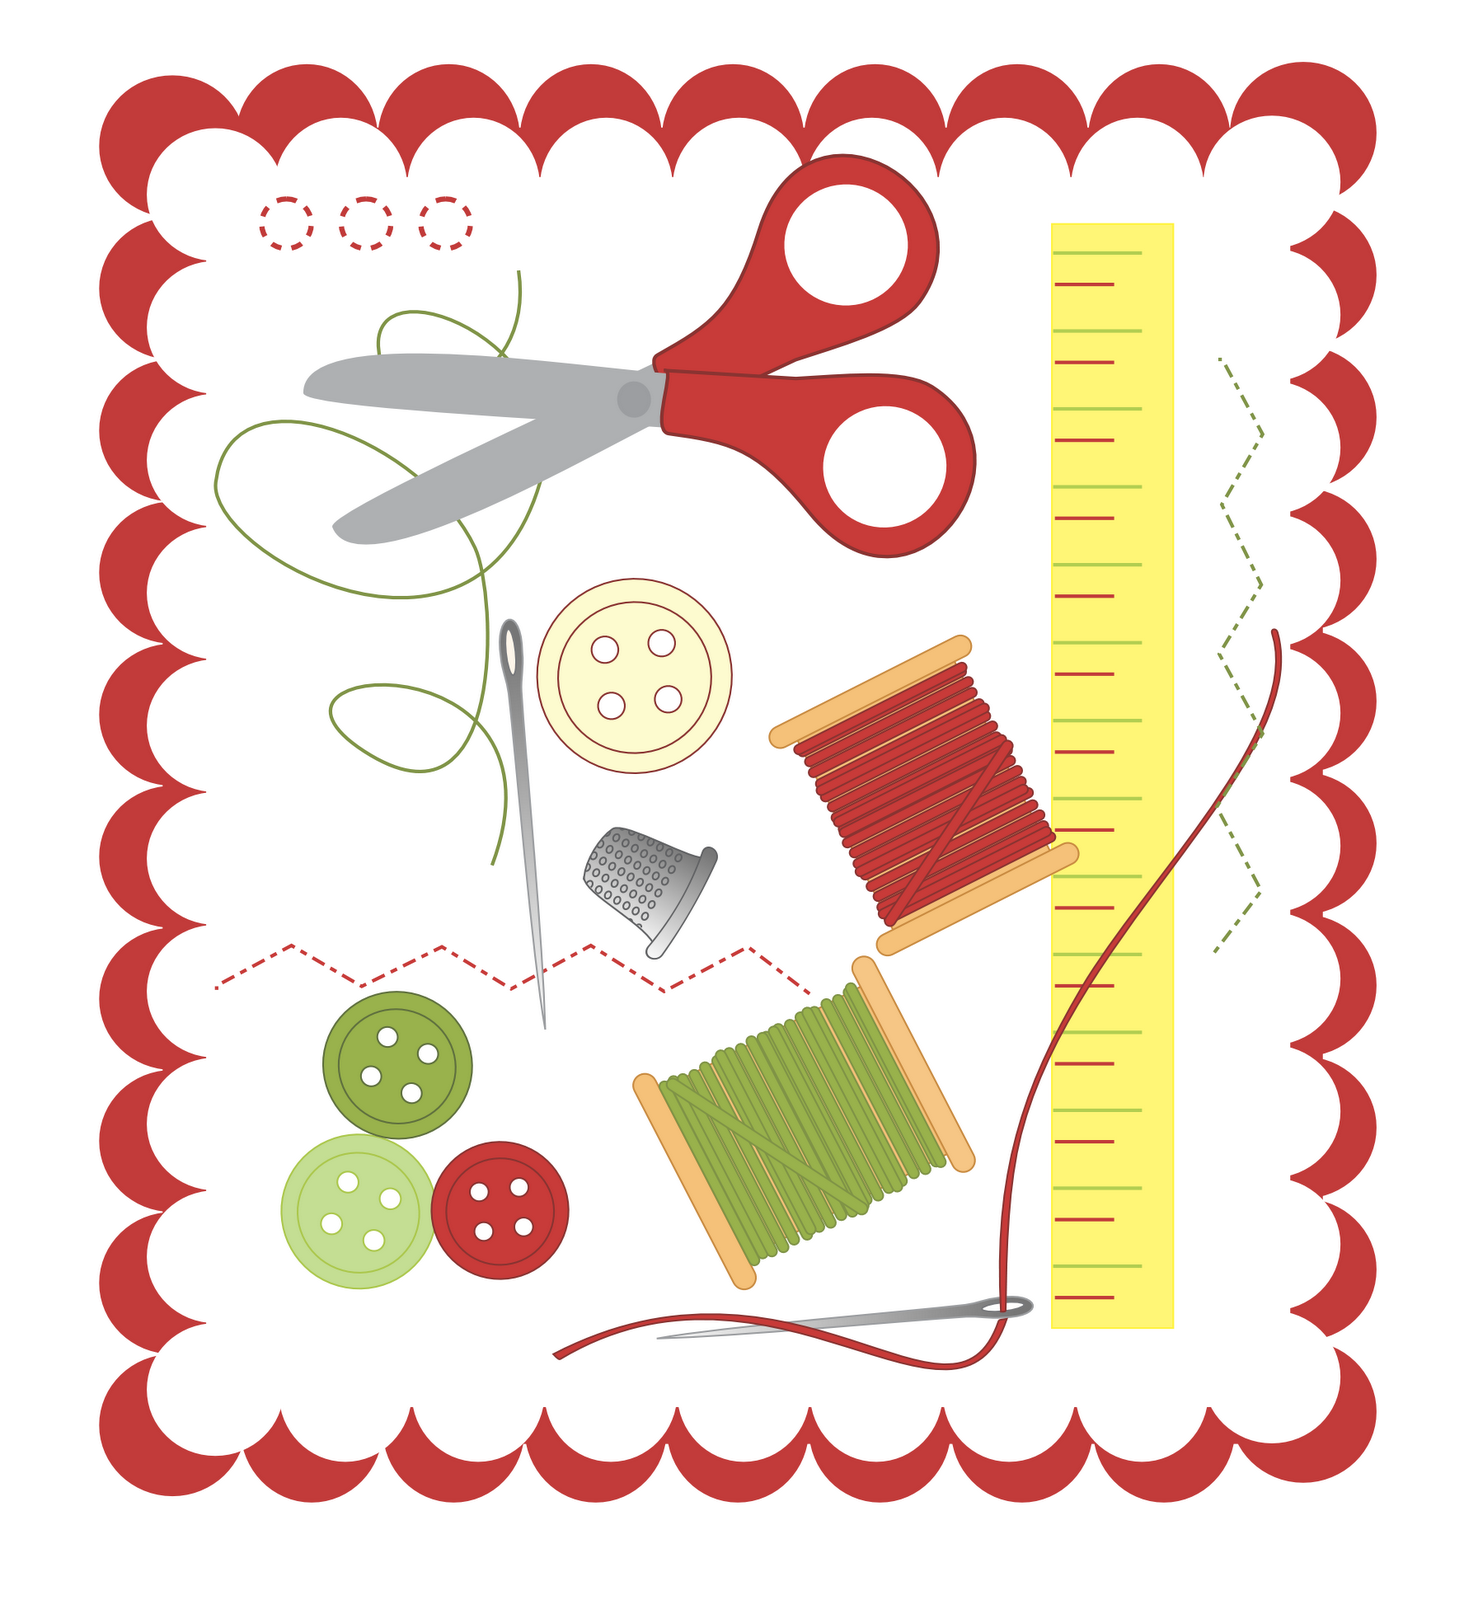 Sewing Clipart Free-Sewing Clipart Free-0